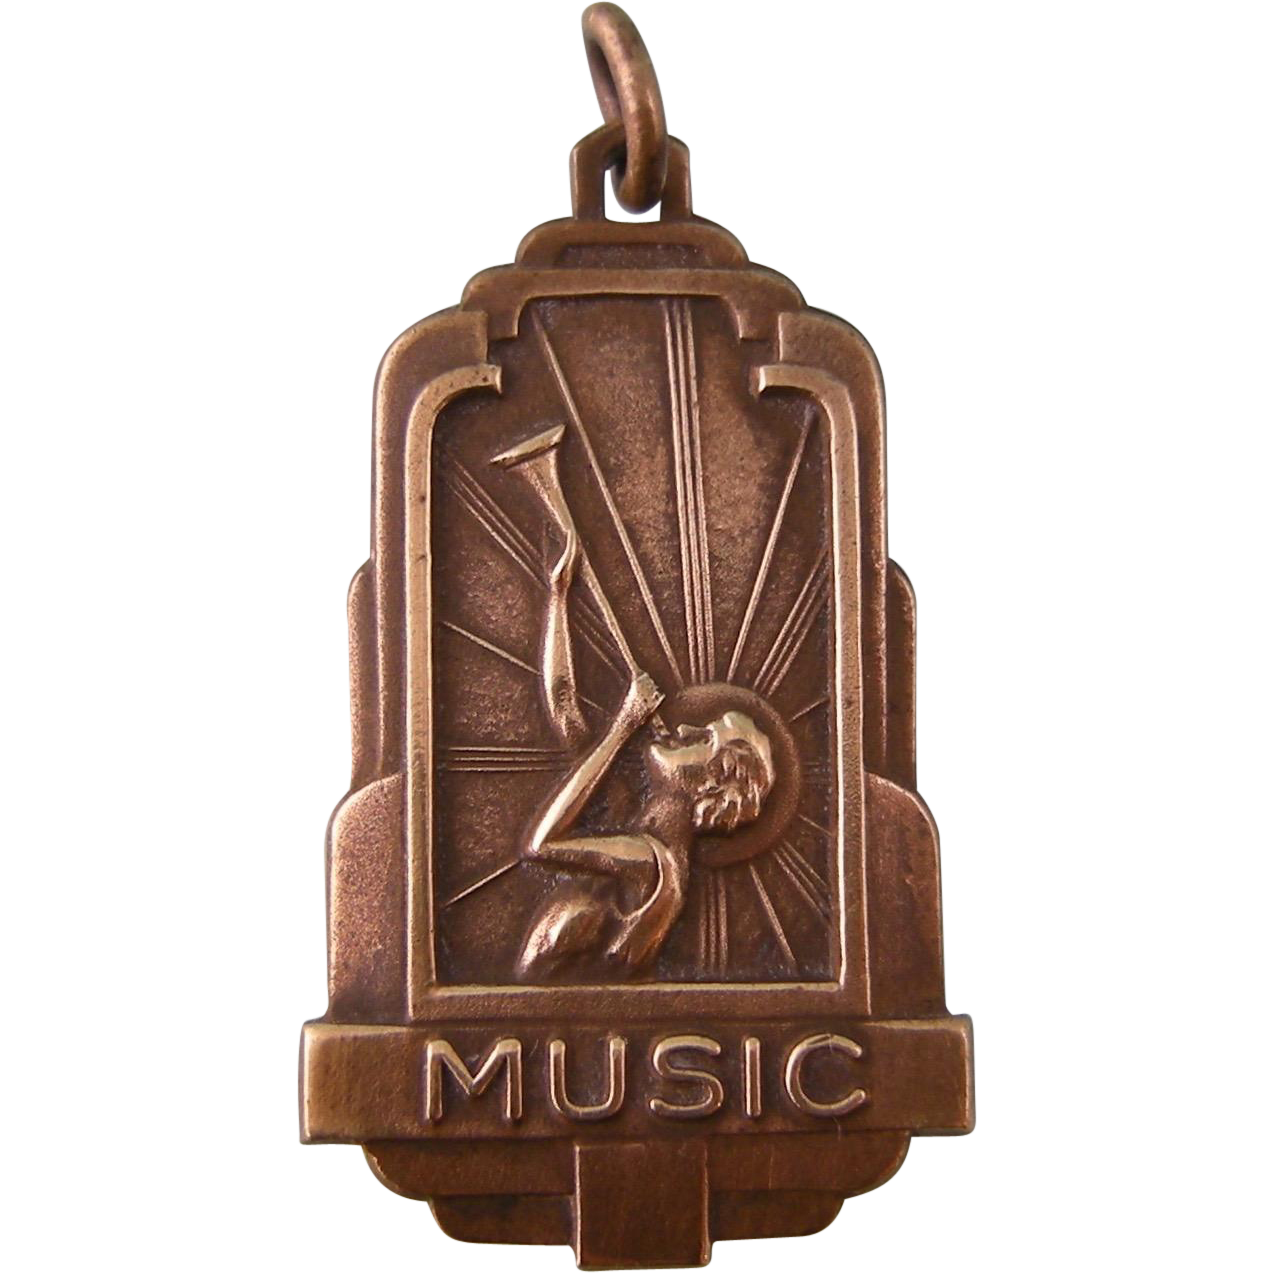 Art Deco Music Medal For Charm Or Pendant Sold On Ruby Lane